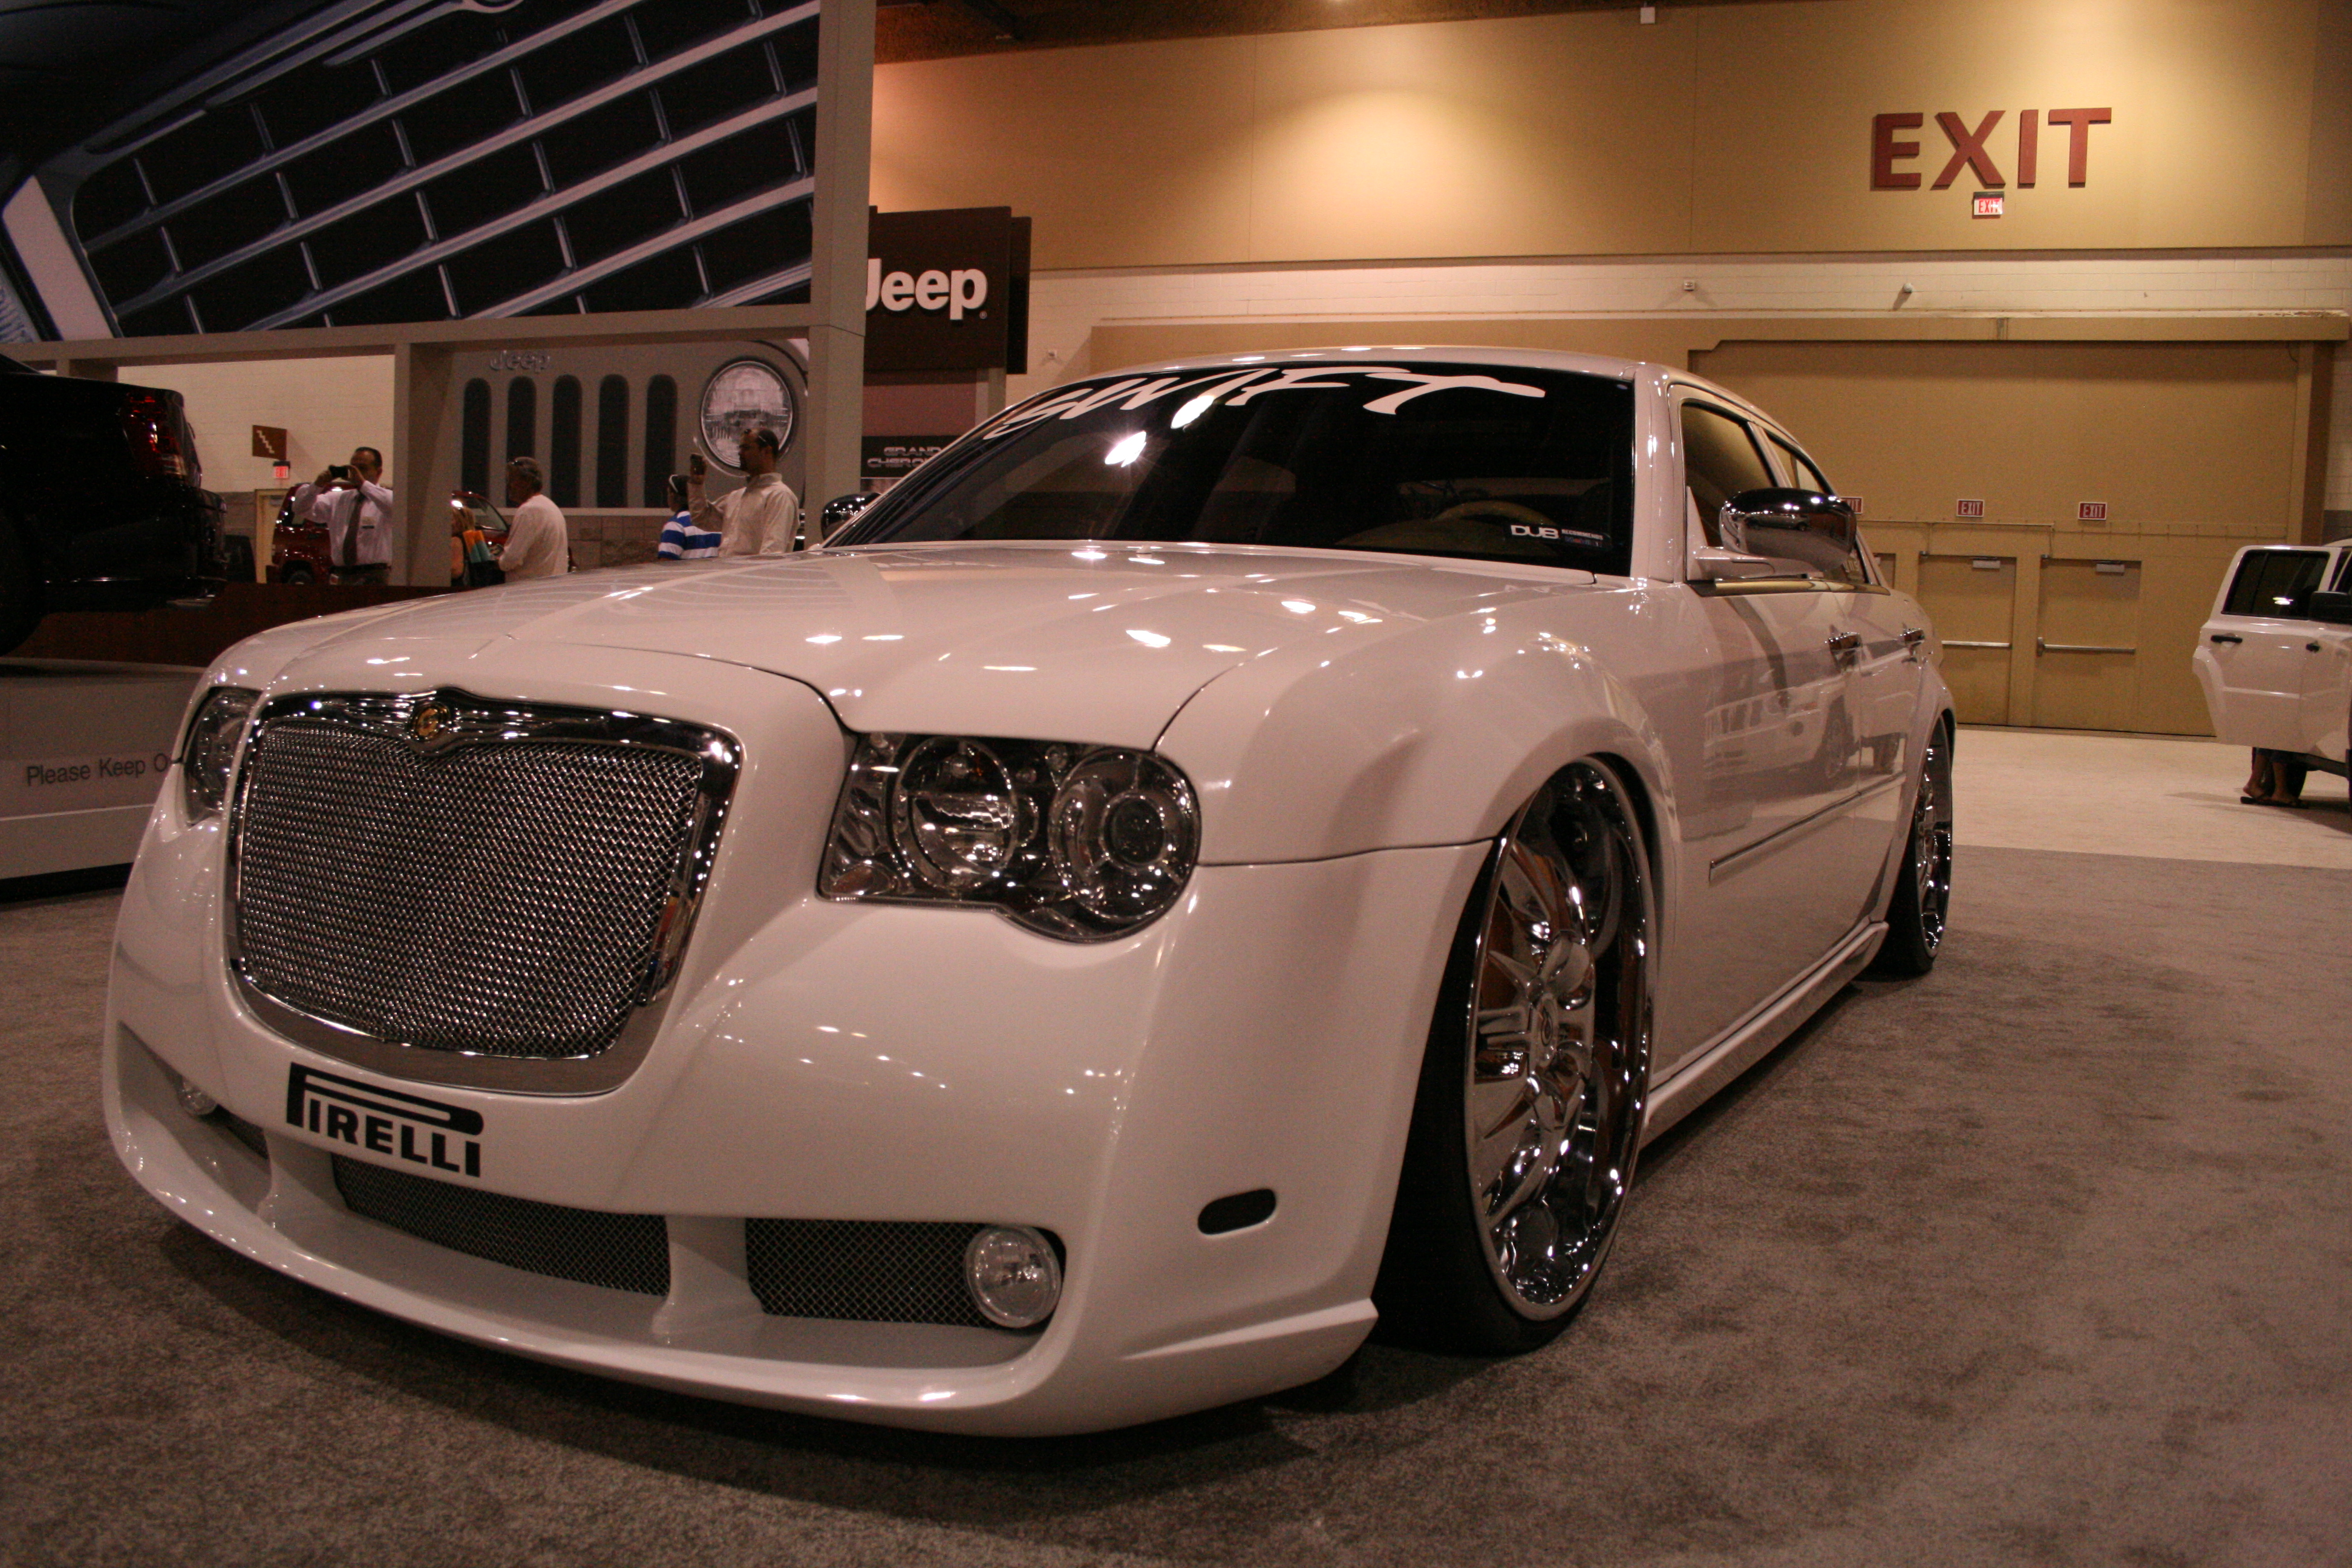 2009 Chrysler 300 #12